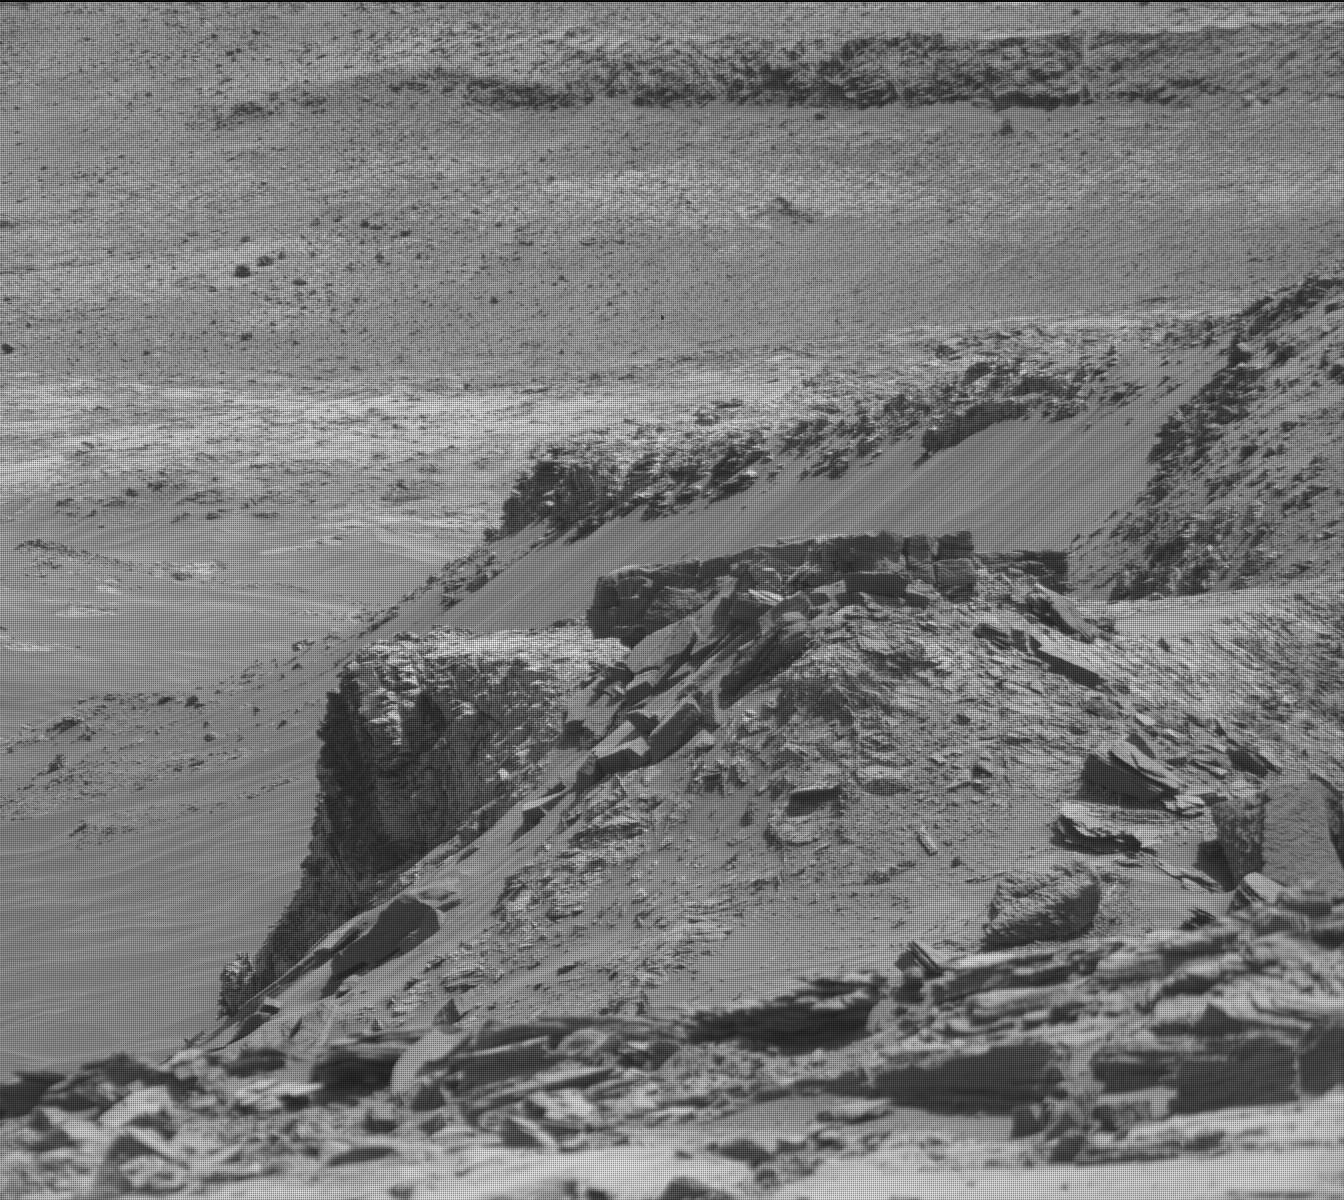 mars rovers destroyed - photo #5